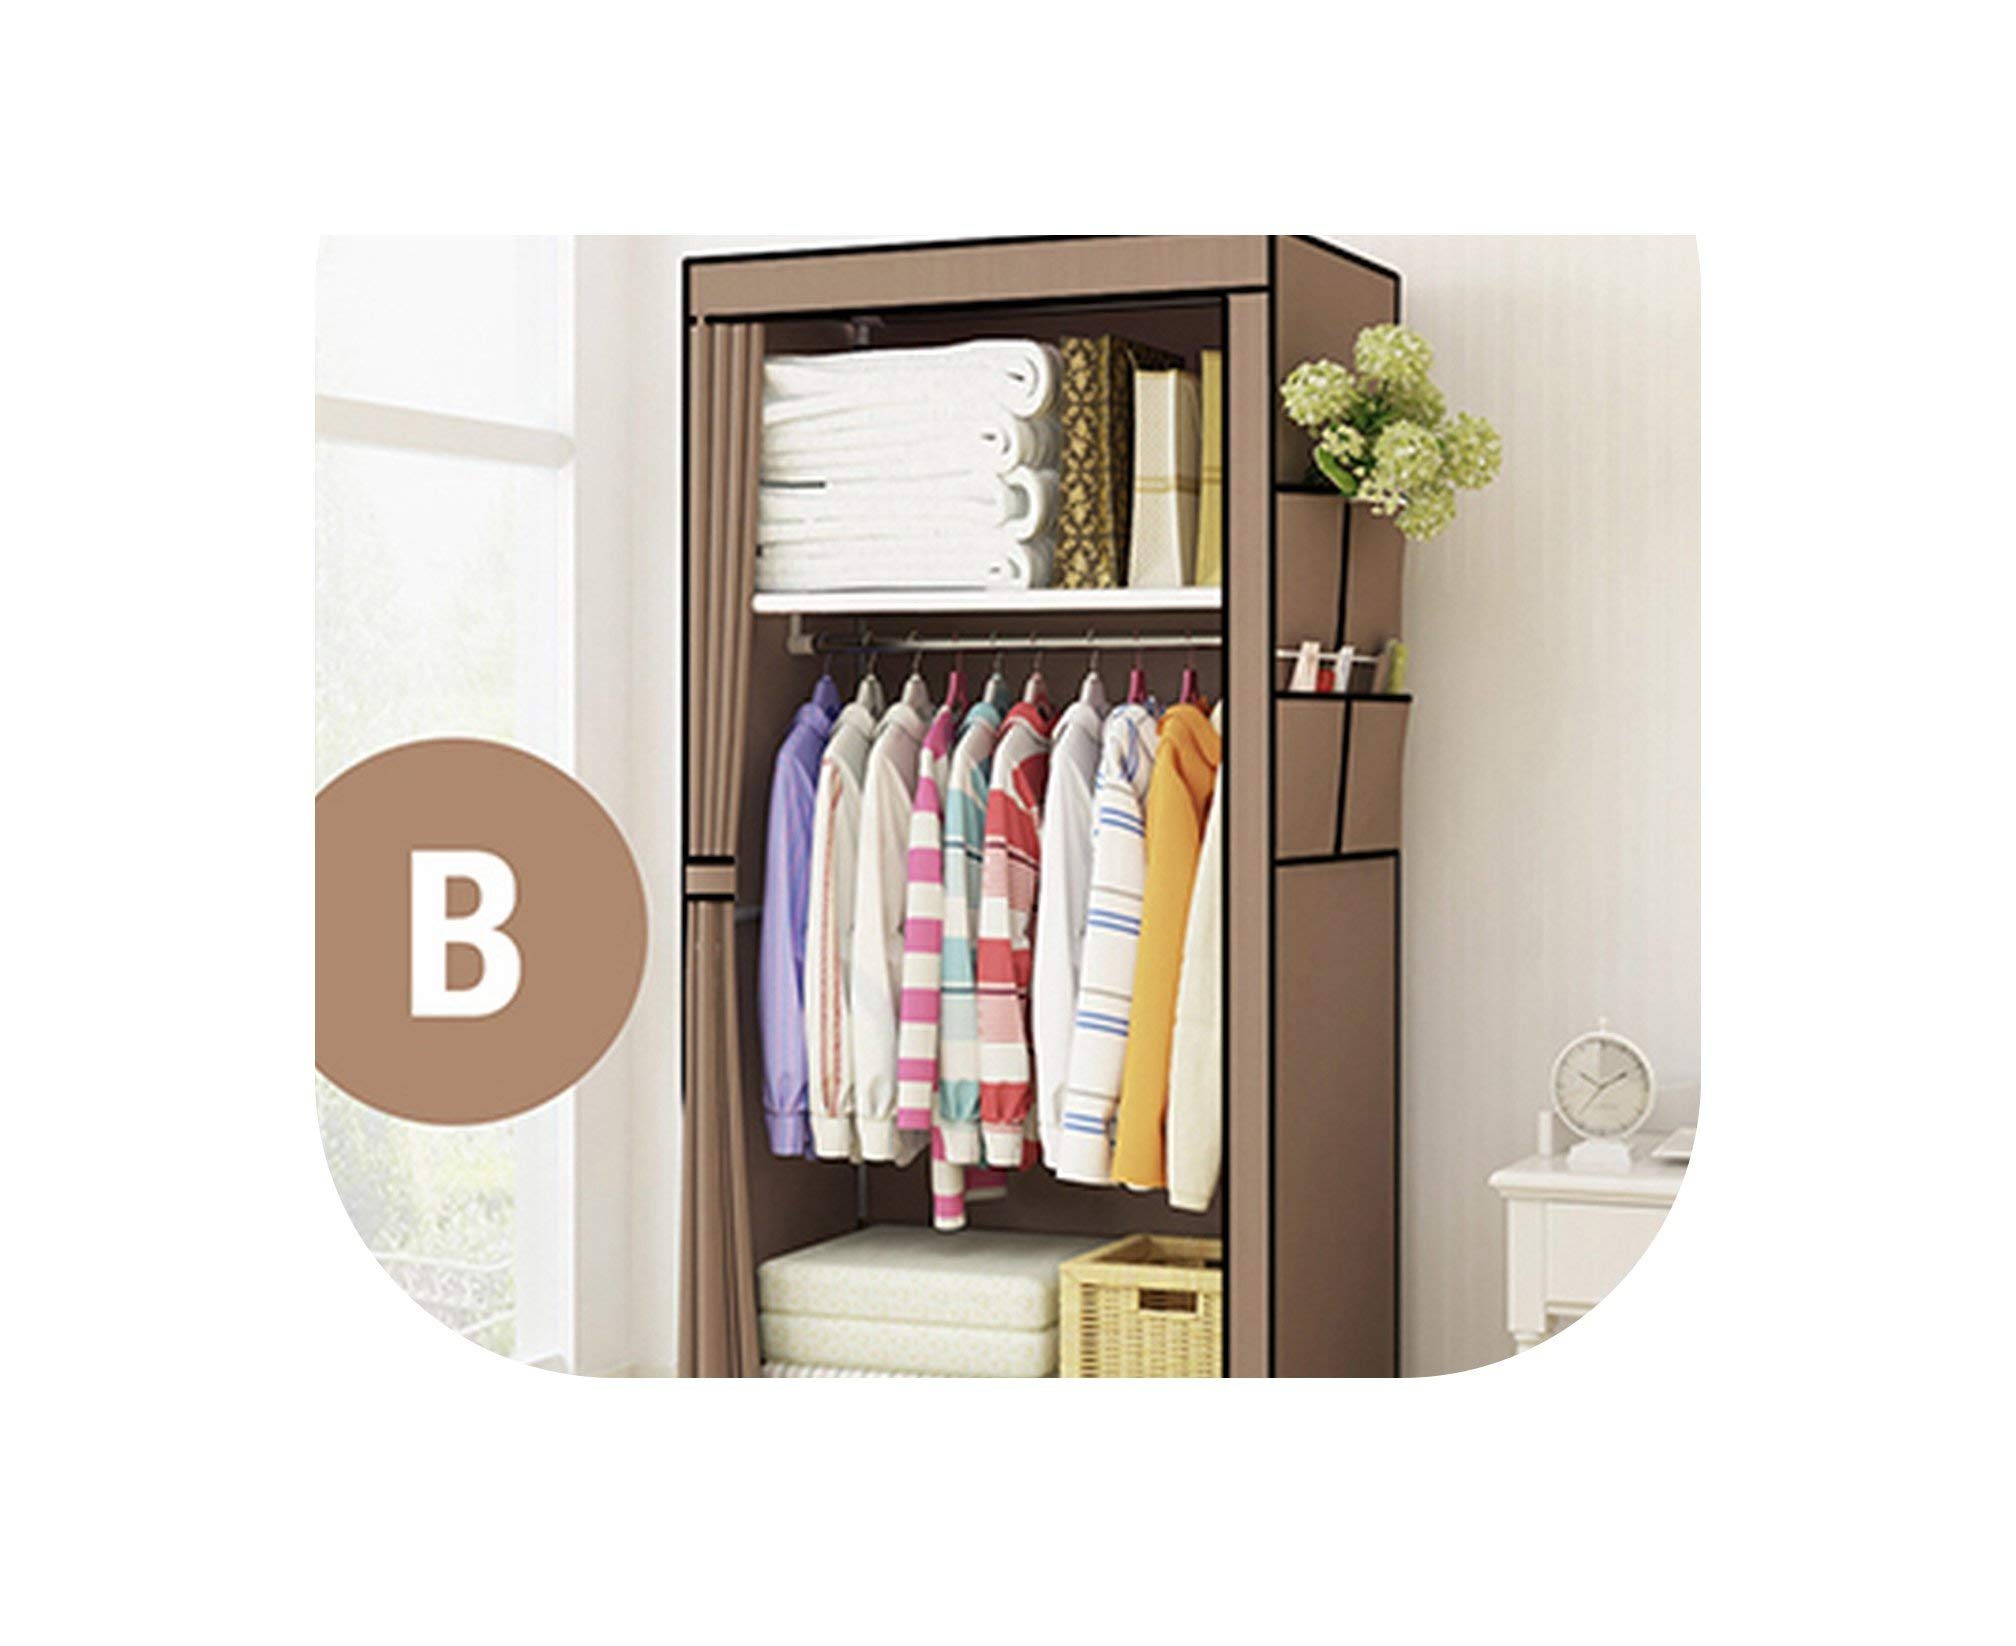 Miracle day Minimalist Modern Non Woven Cloth Wardrobe Baby Storage Cabinet Folding Steel Individual Closet Bedroom Furniture,White